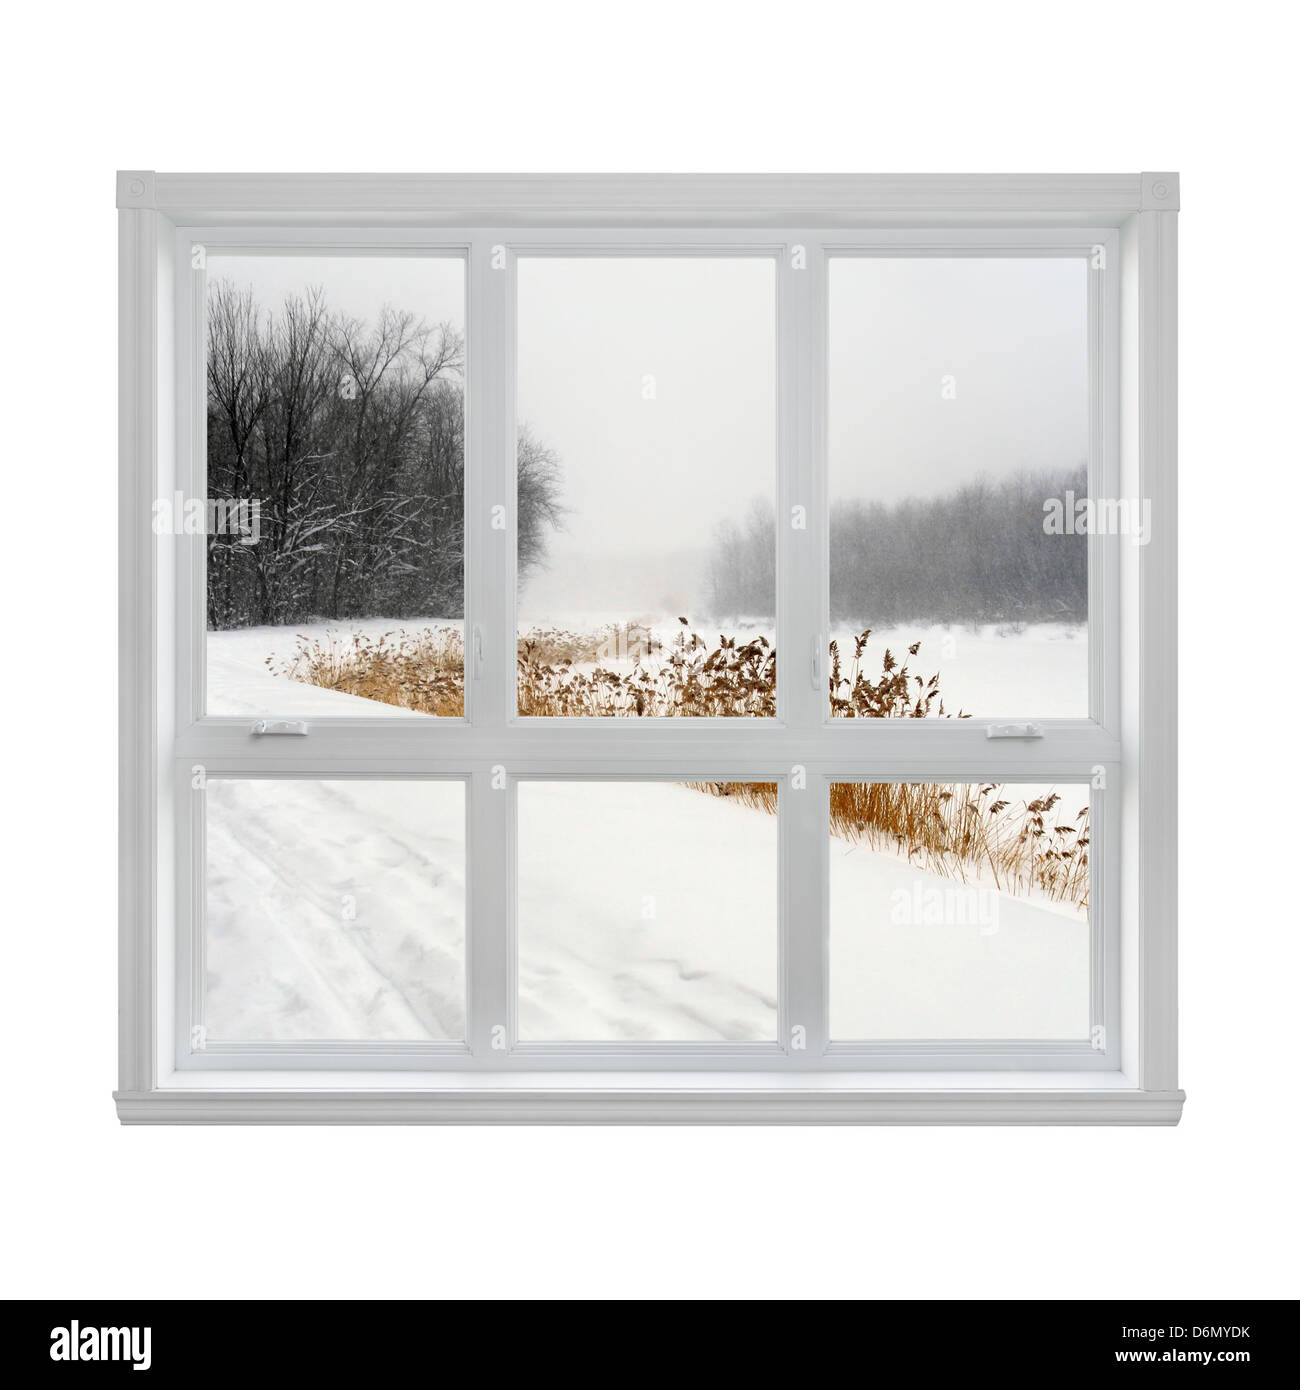 Snowy winter landscape seen through the window. - Stock Image